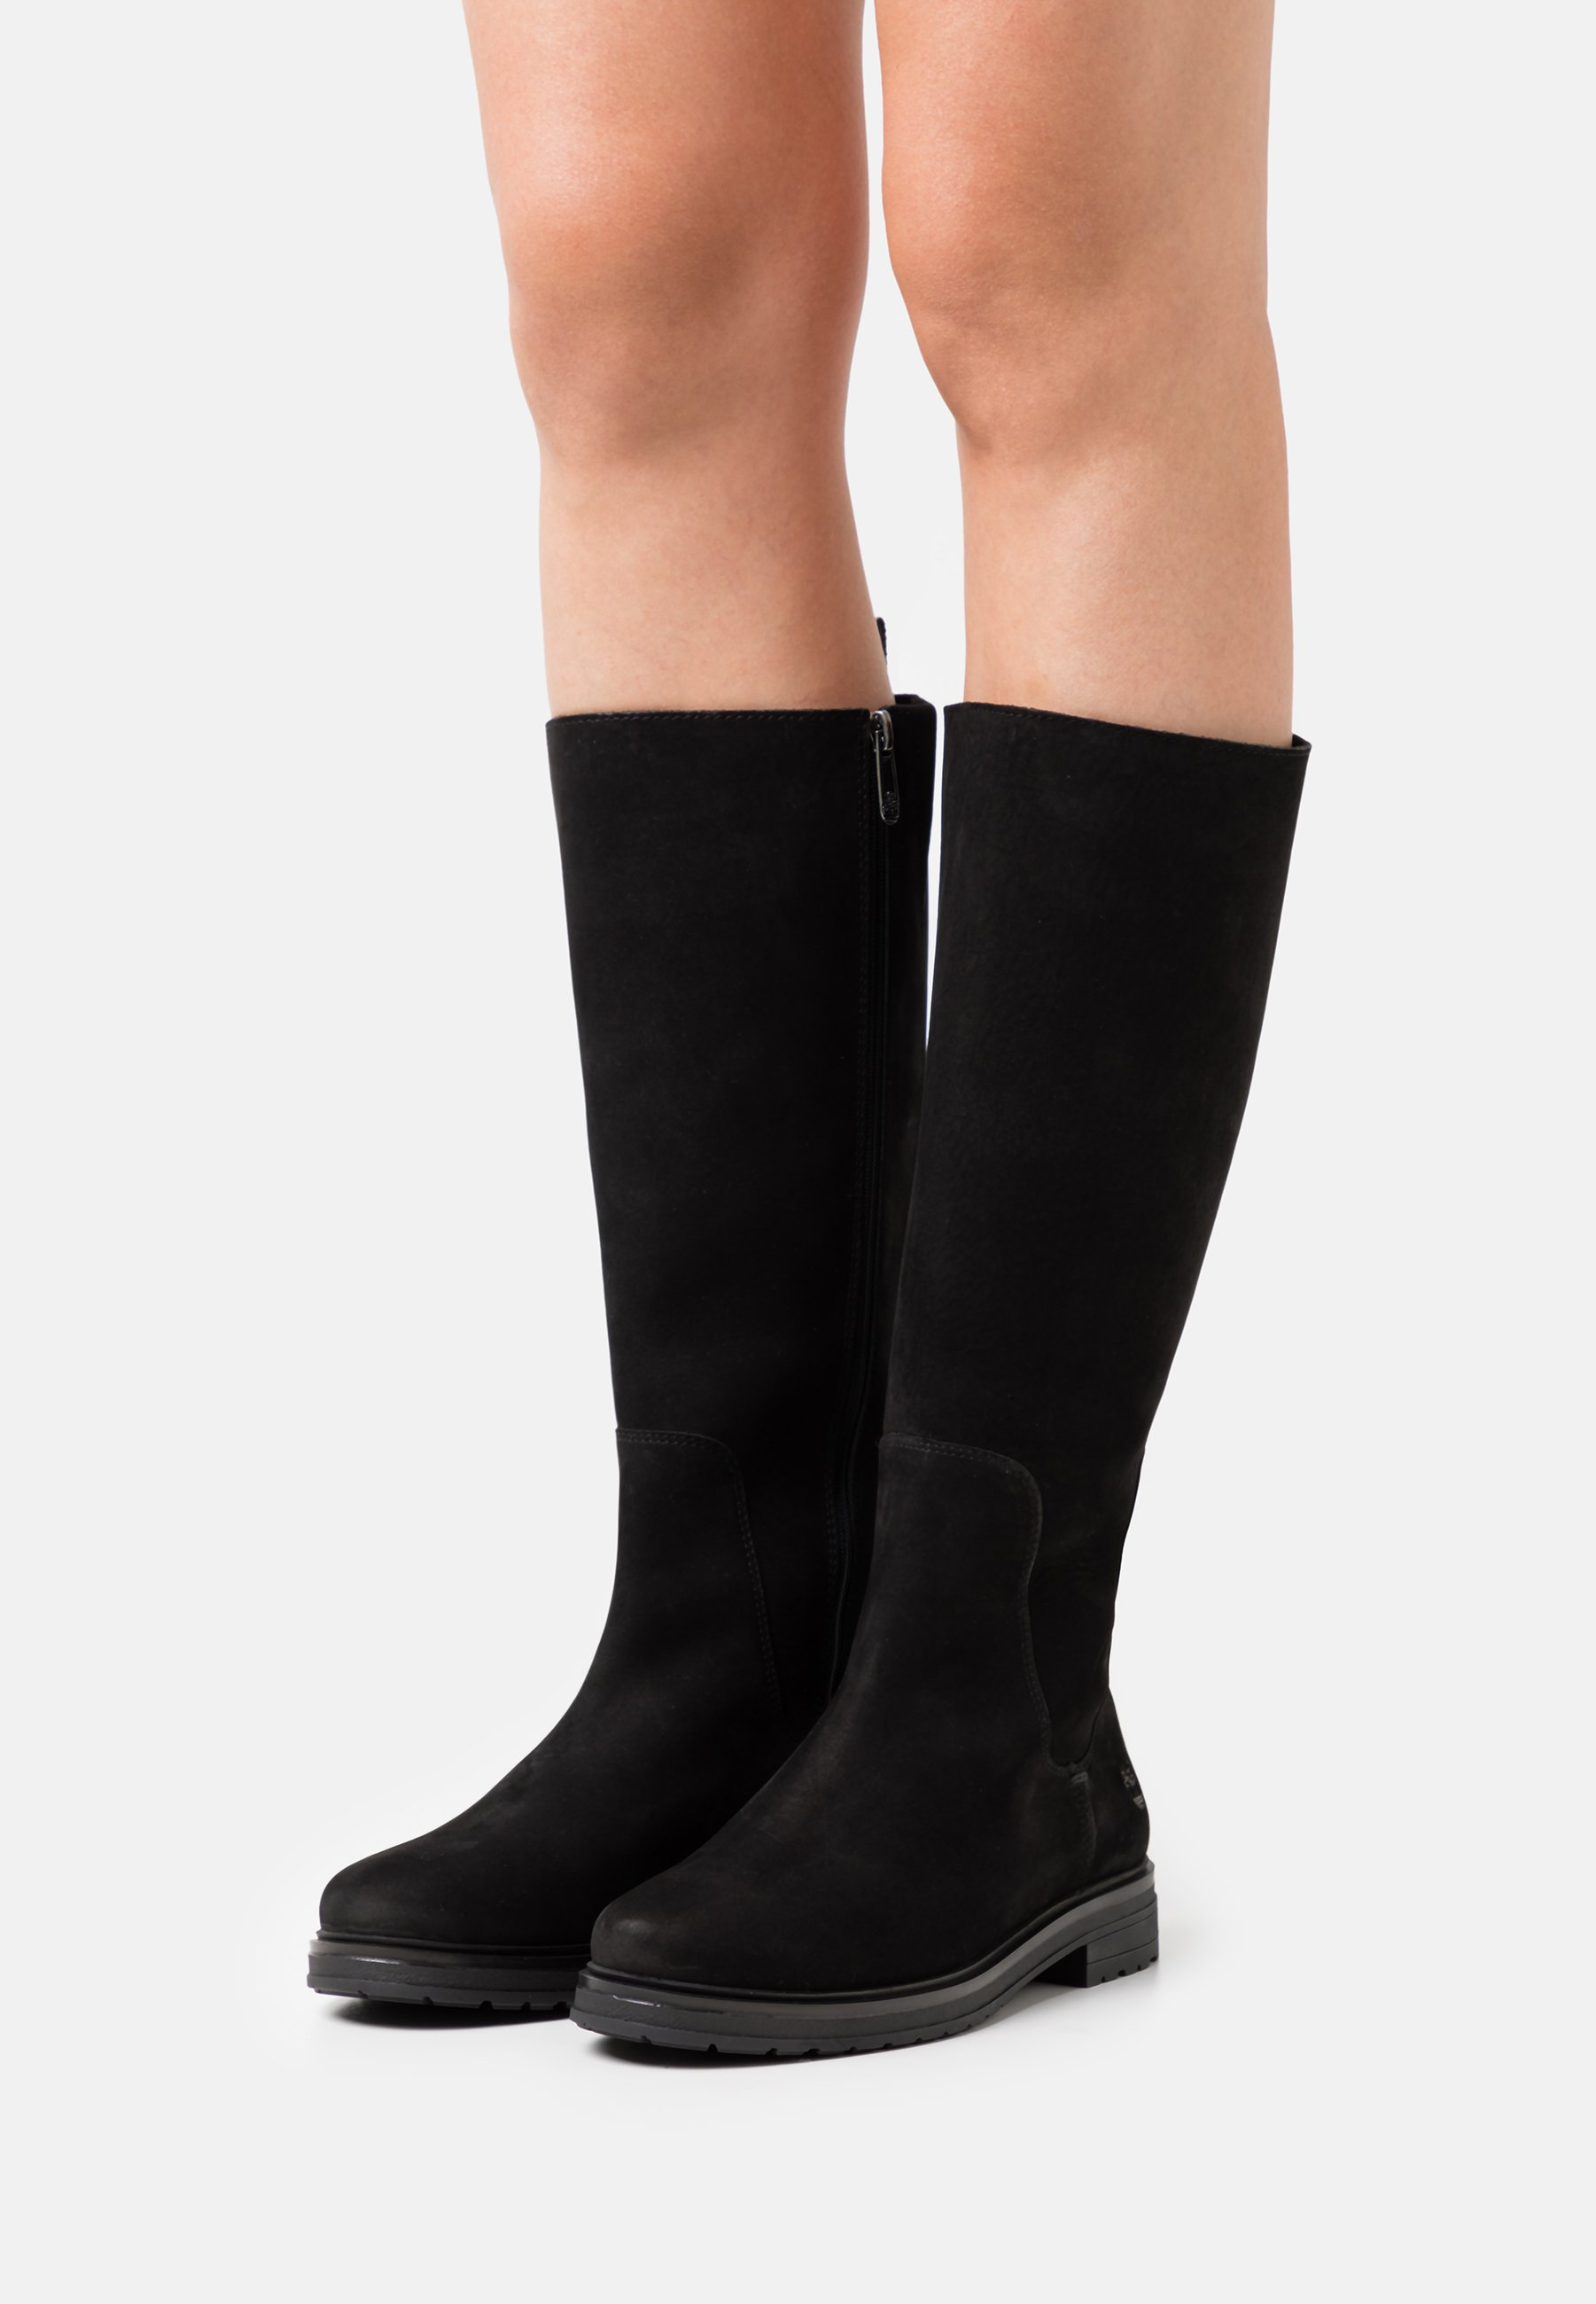 Femme HANNOVER HILL TALL BOOT - Bottes - black